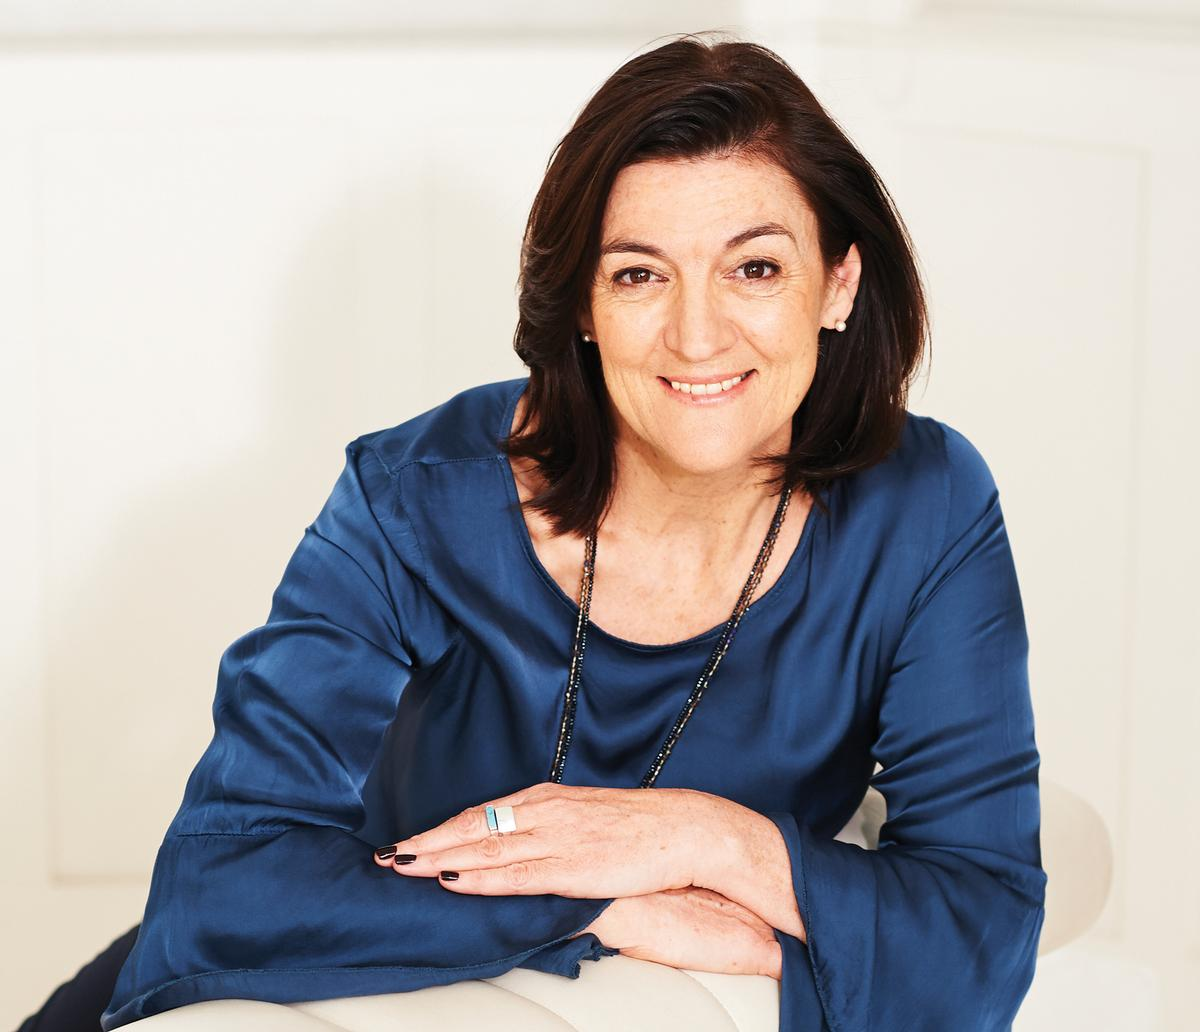 In her new role, Gabriel will now oversee the USA, UK and EMEA / Elemis